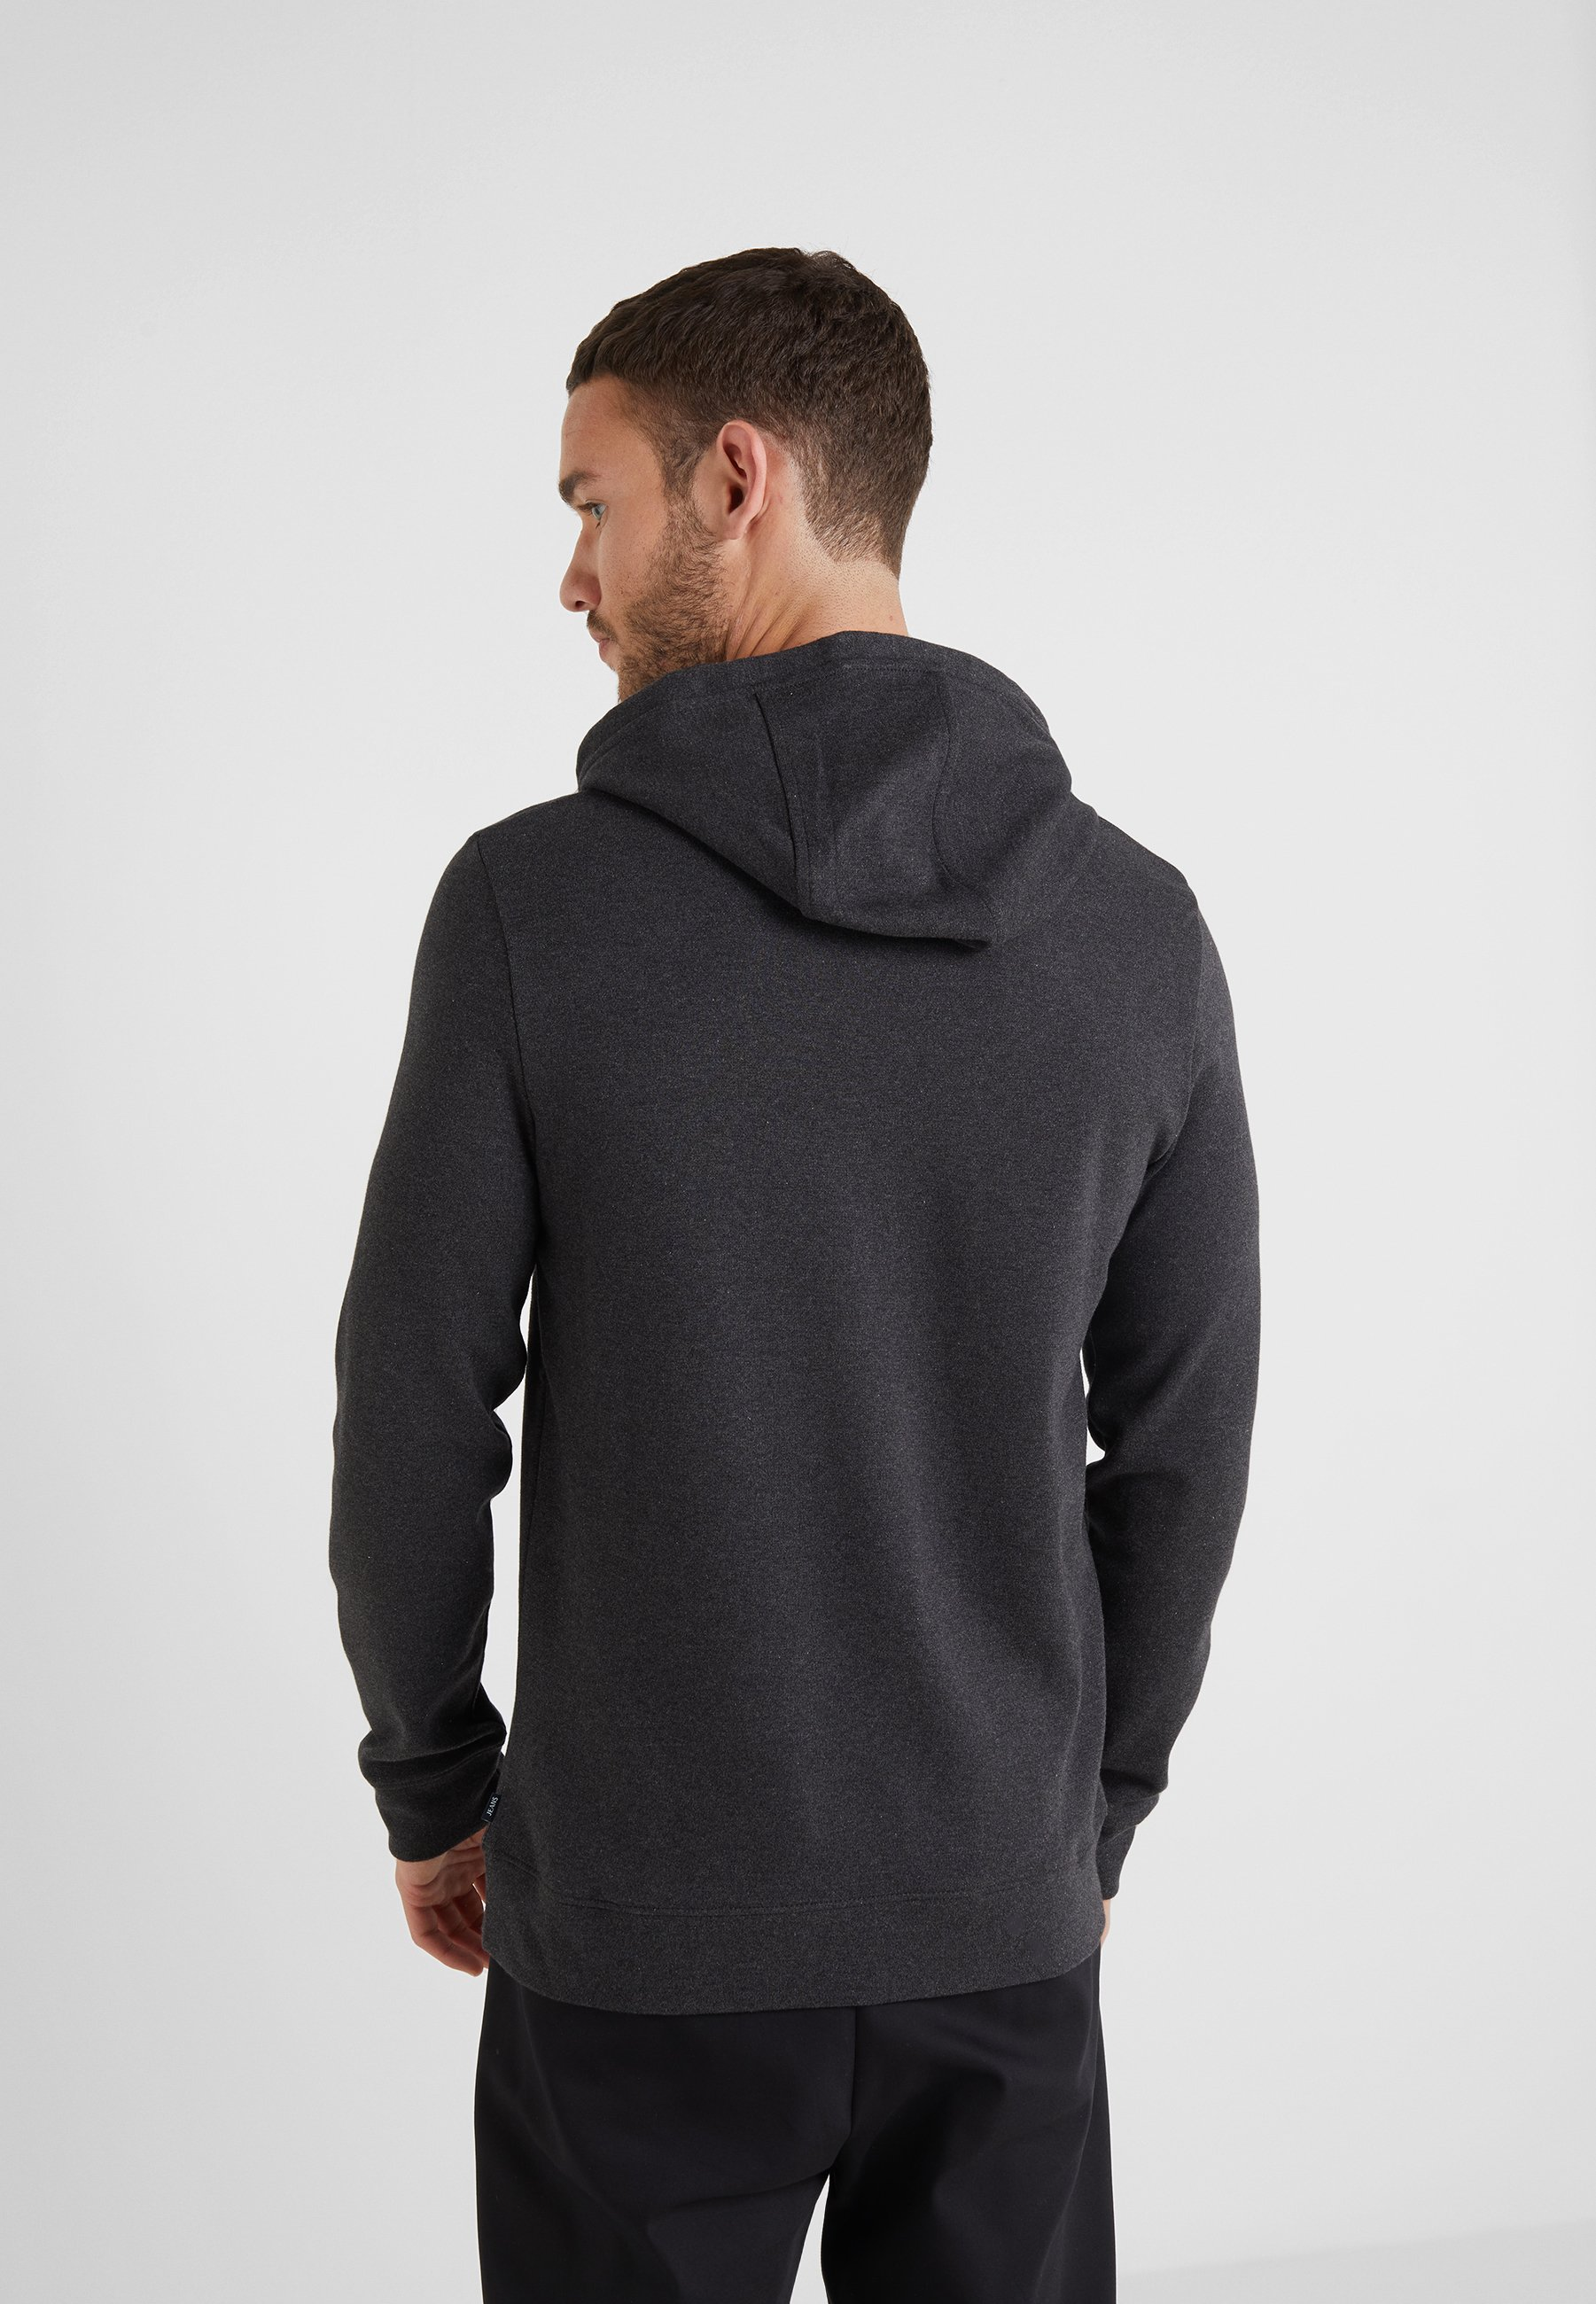 AlfredoSweat JoopJeans JoopJeans À Anthracit Capuche gYfb76vy